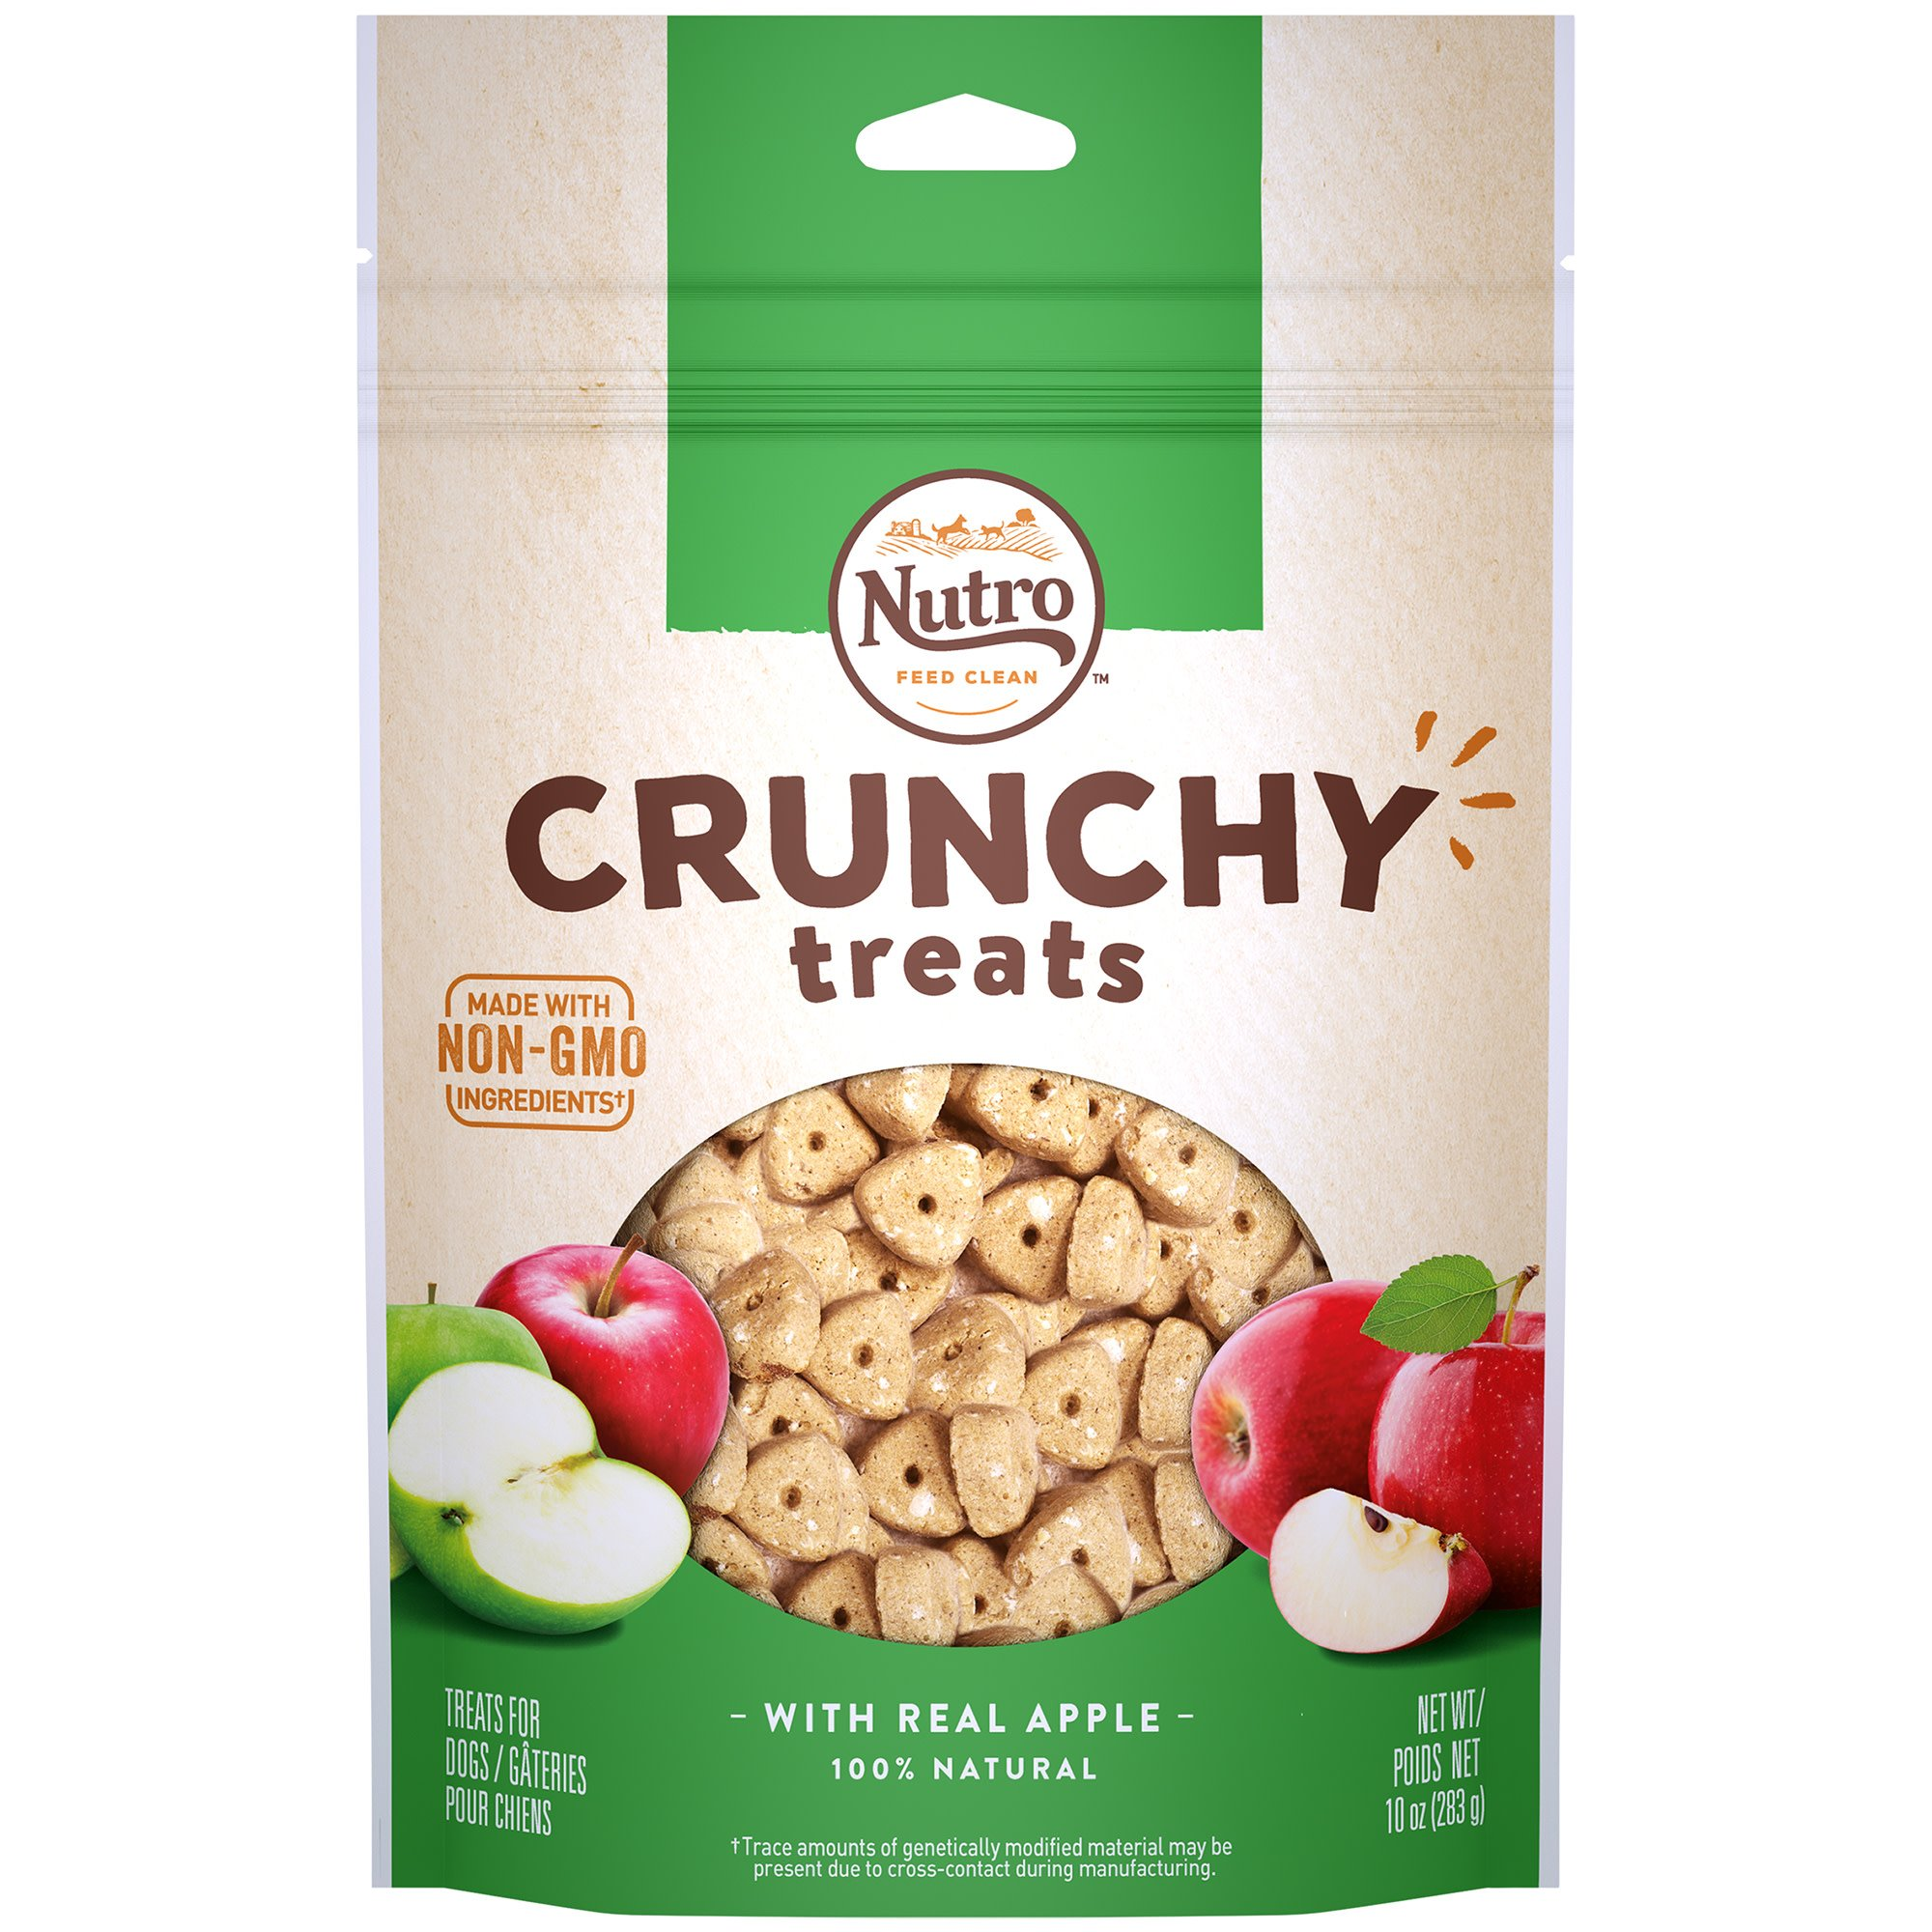 NUTRO Crunchy Treats With Real Apple Treats for Dogs